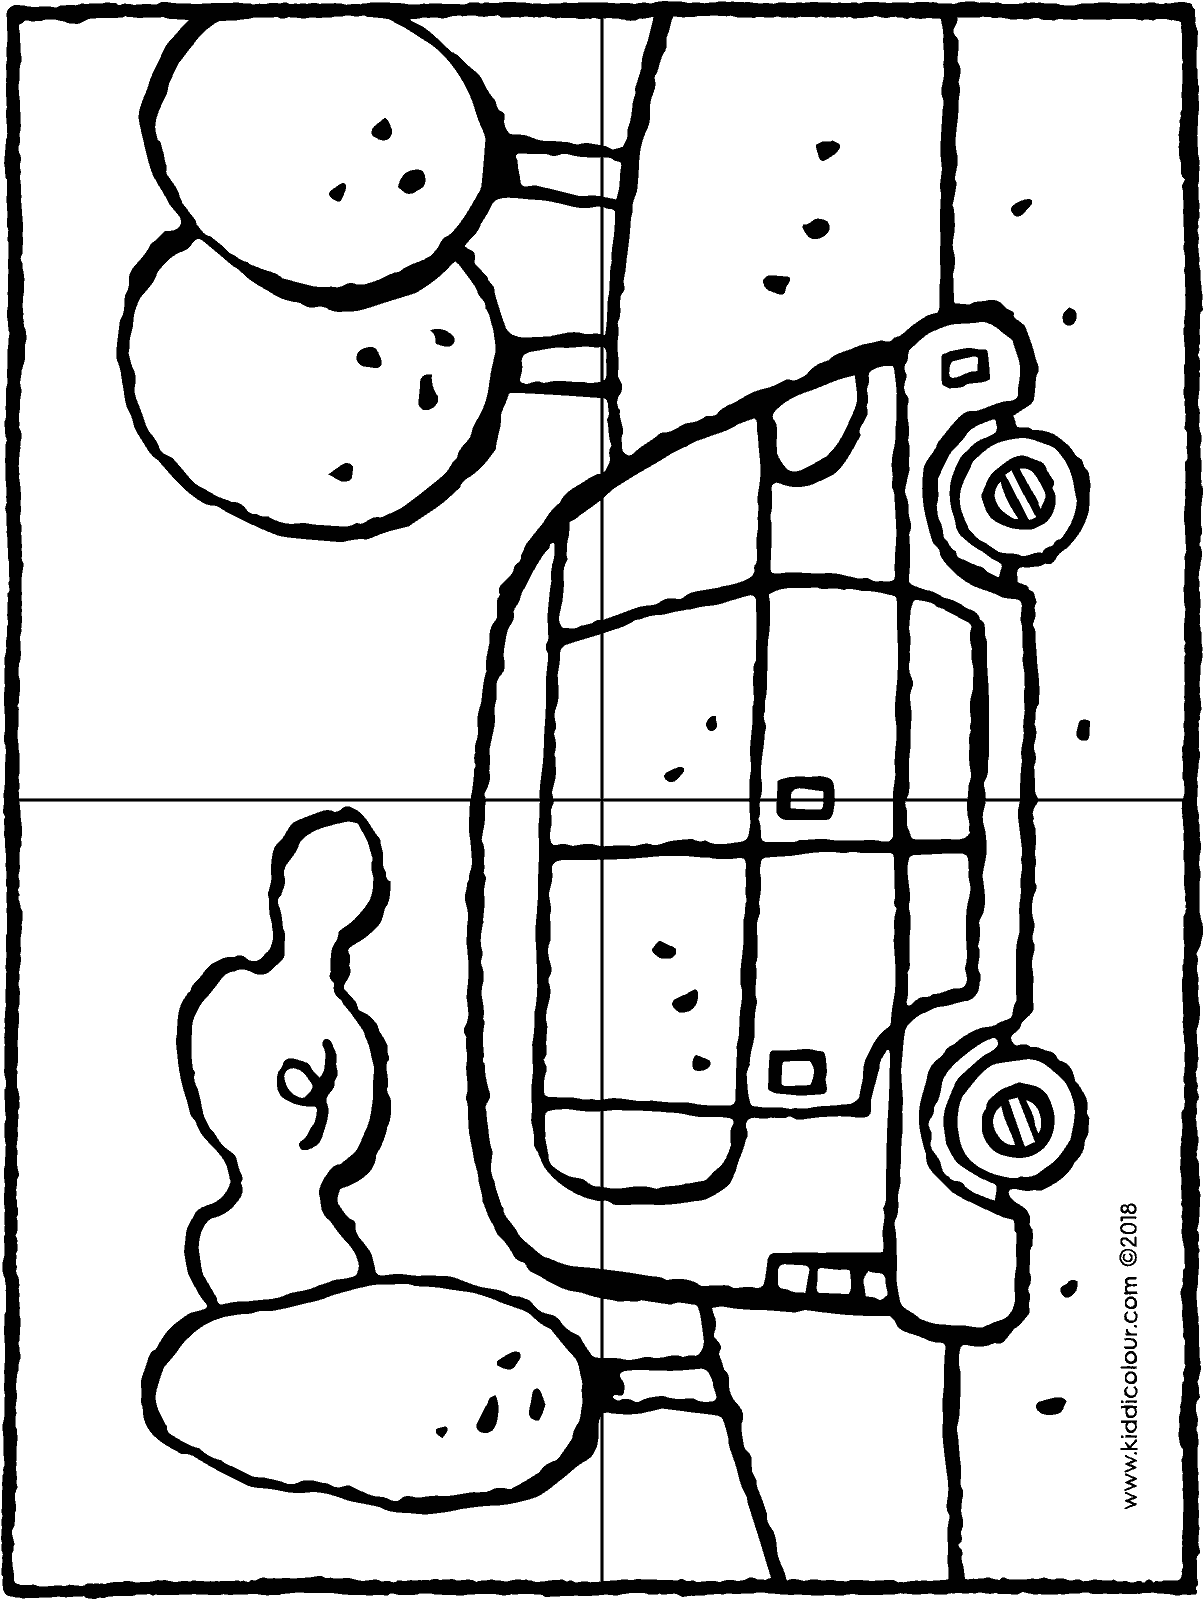 car in the landscape • 4-piece puzzle colouring page drawing picture 01H